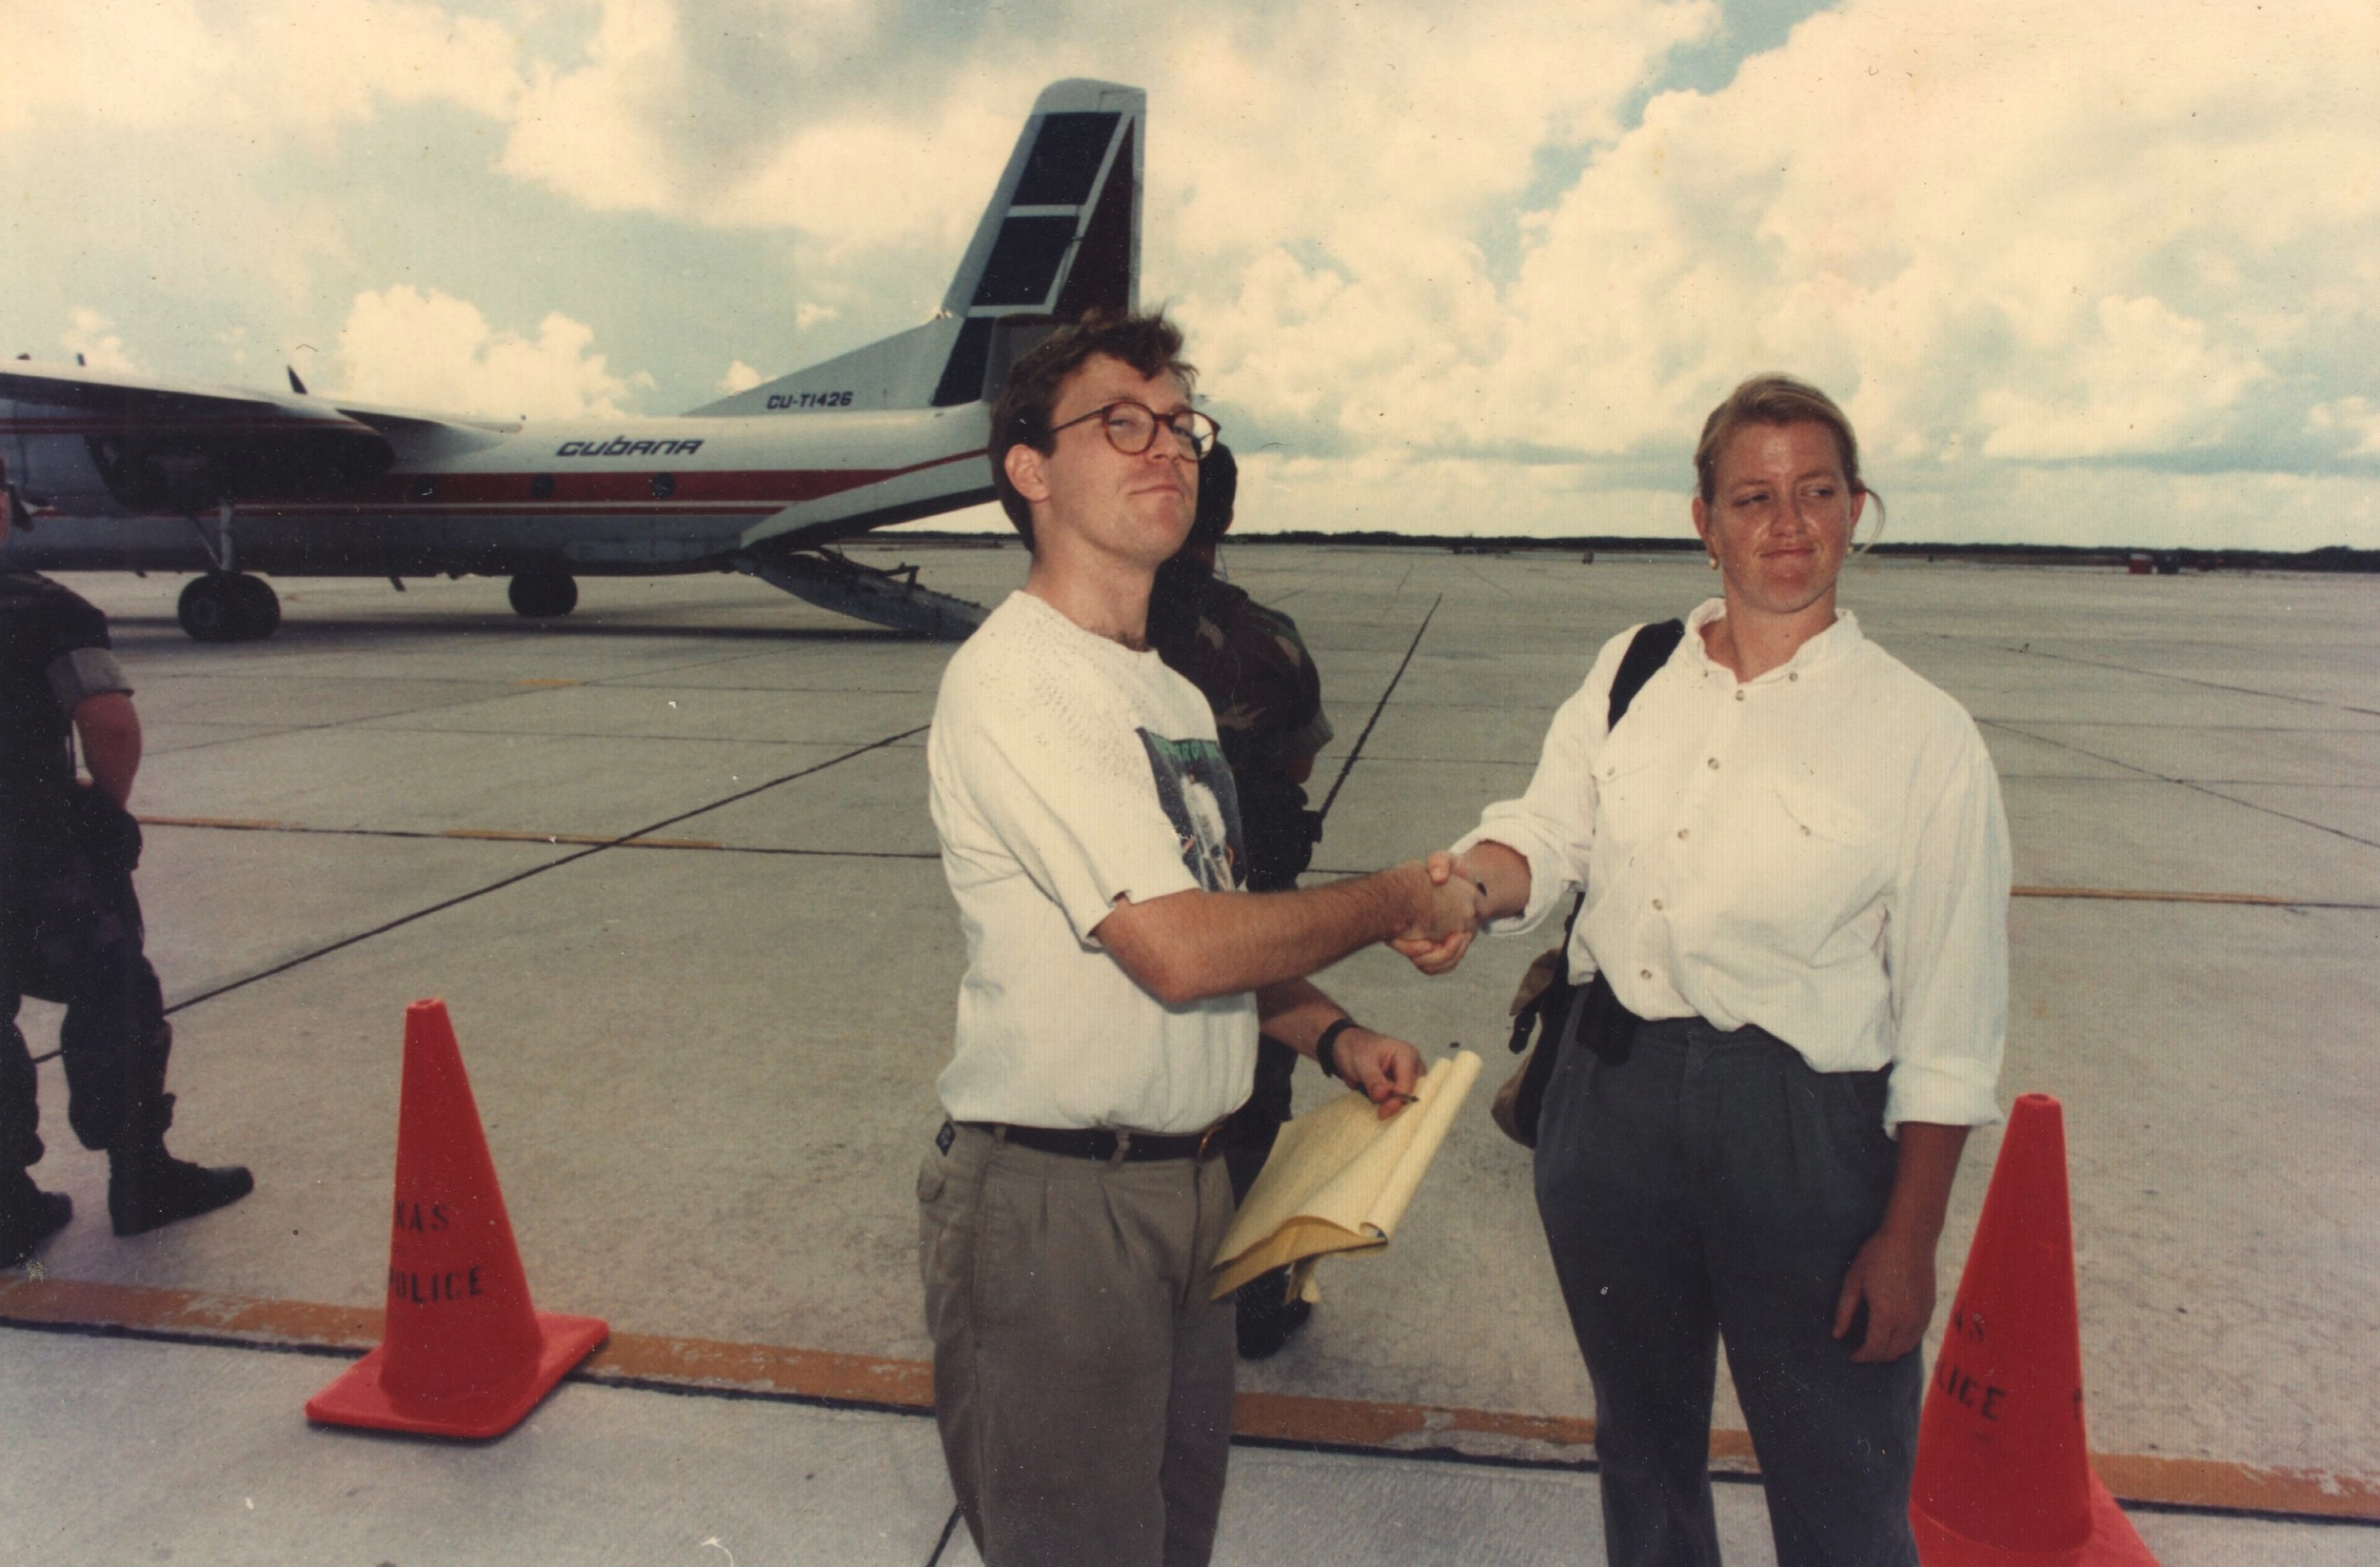 Vernon Silver, then of the Key West Citizen, now reporting for Bloomberg in Rome, and I do a grip-and-grin in front of the plane that that Cubans brought over to retrieve aMiG that had been used by a defecting pilot. Possible photo credit: Jose Cabaleiro?